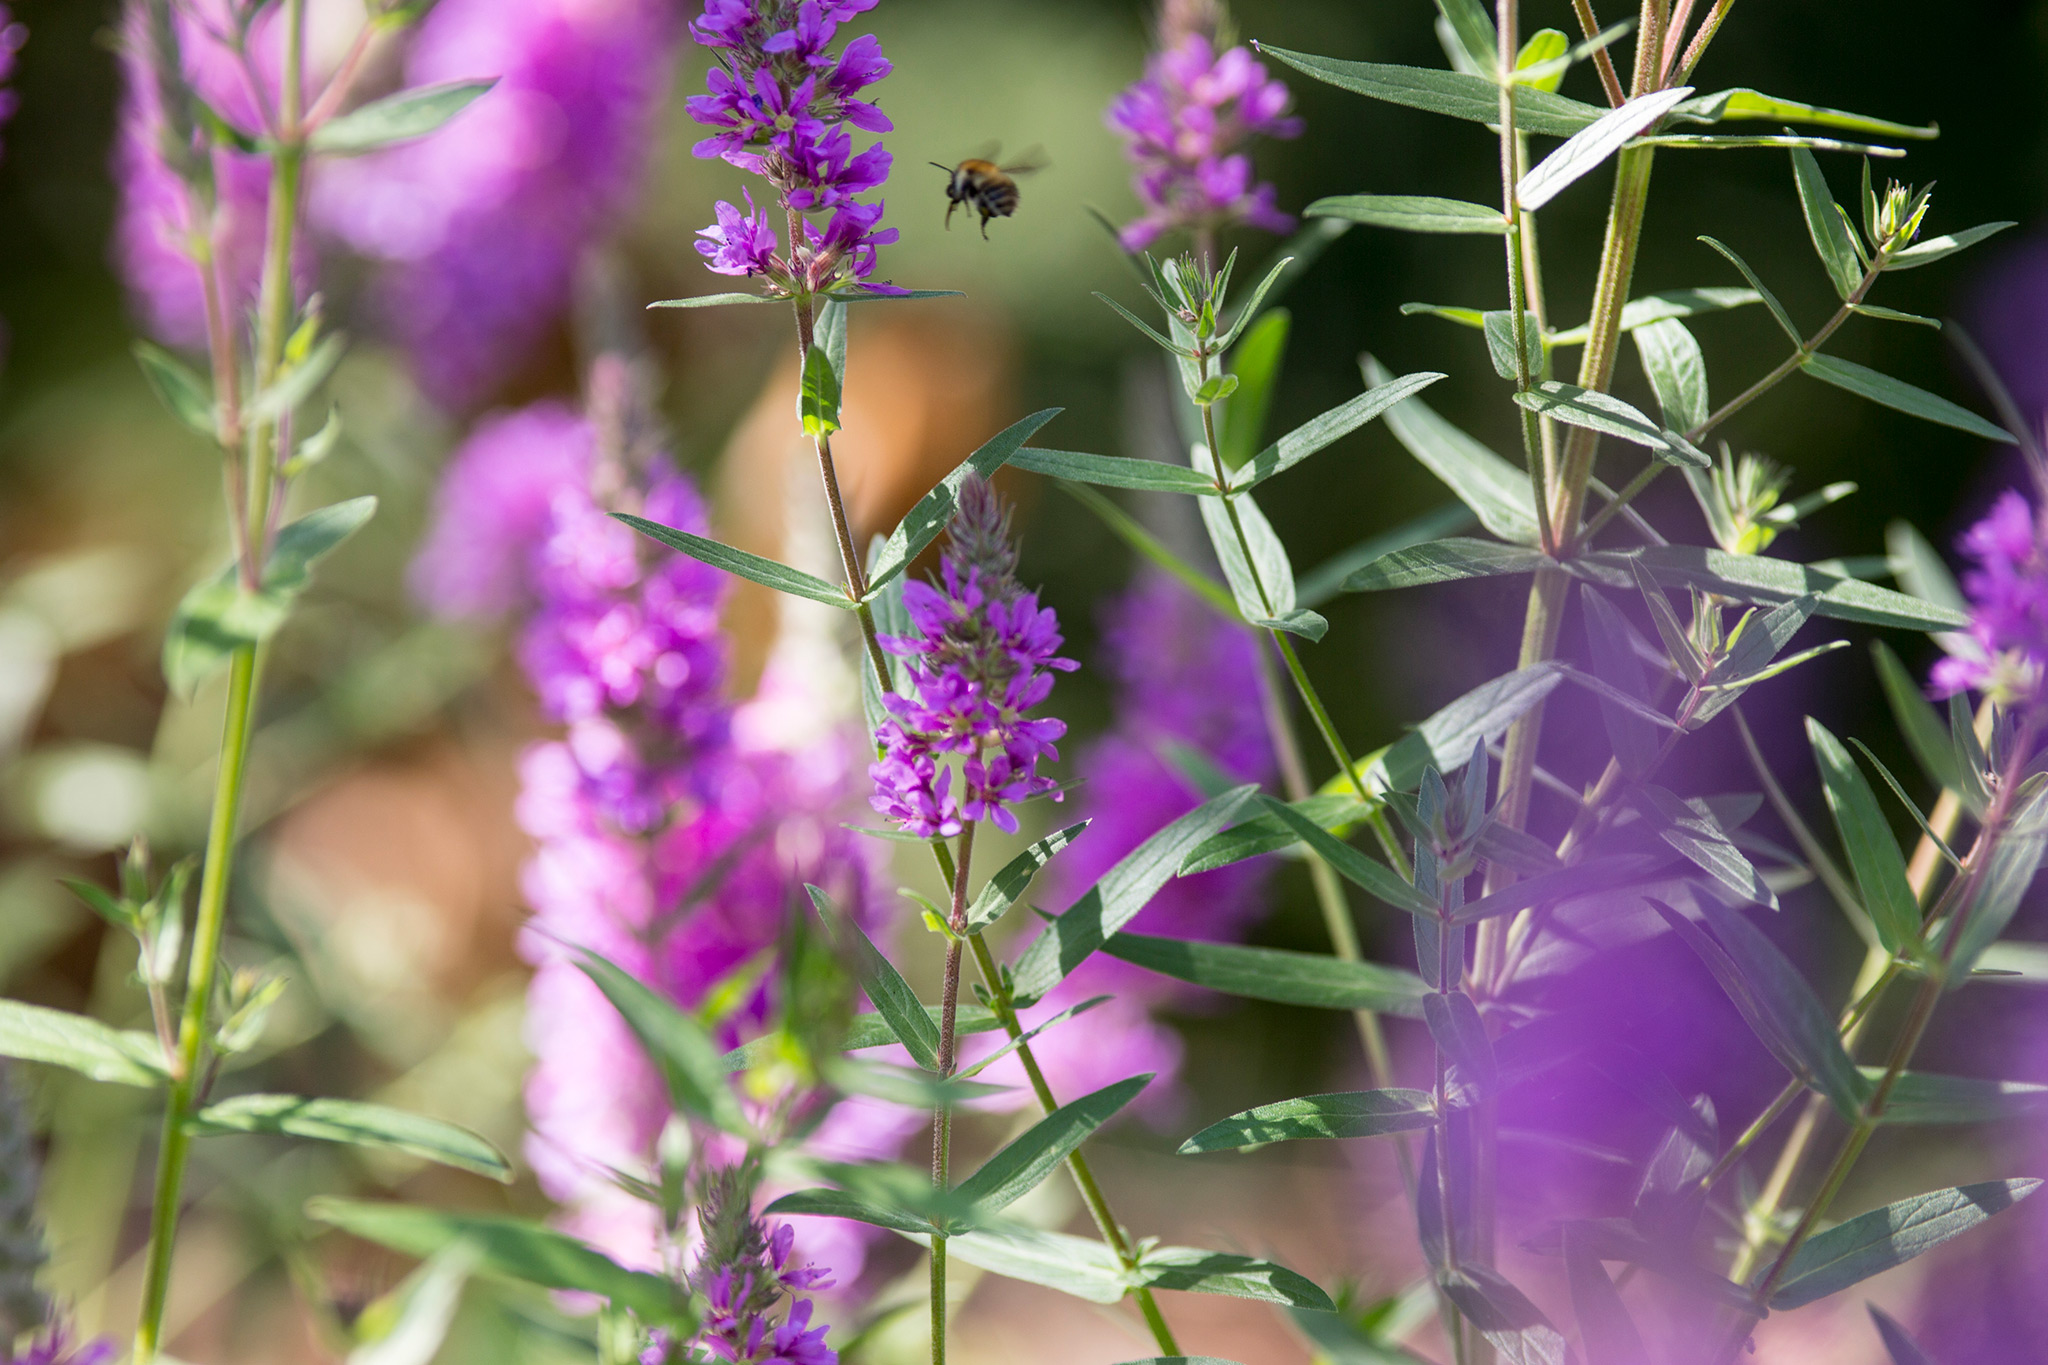 purple-loosestrife-lythrum-salicaria-flowers-with-bee